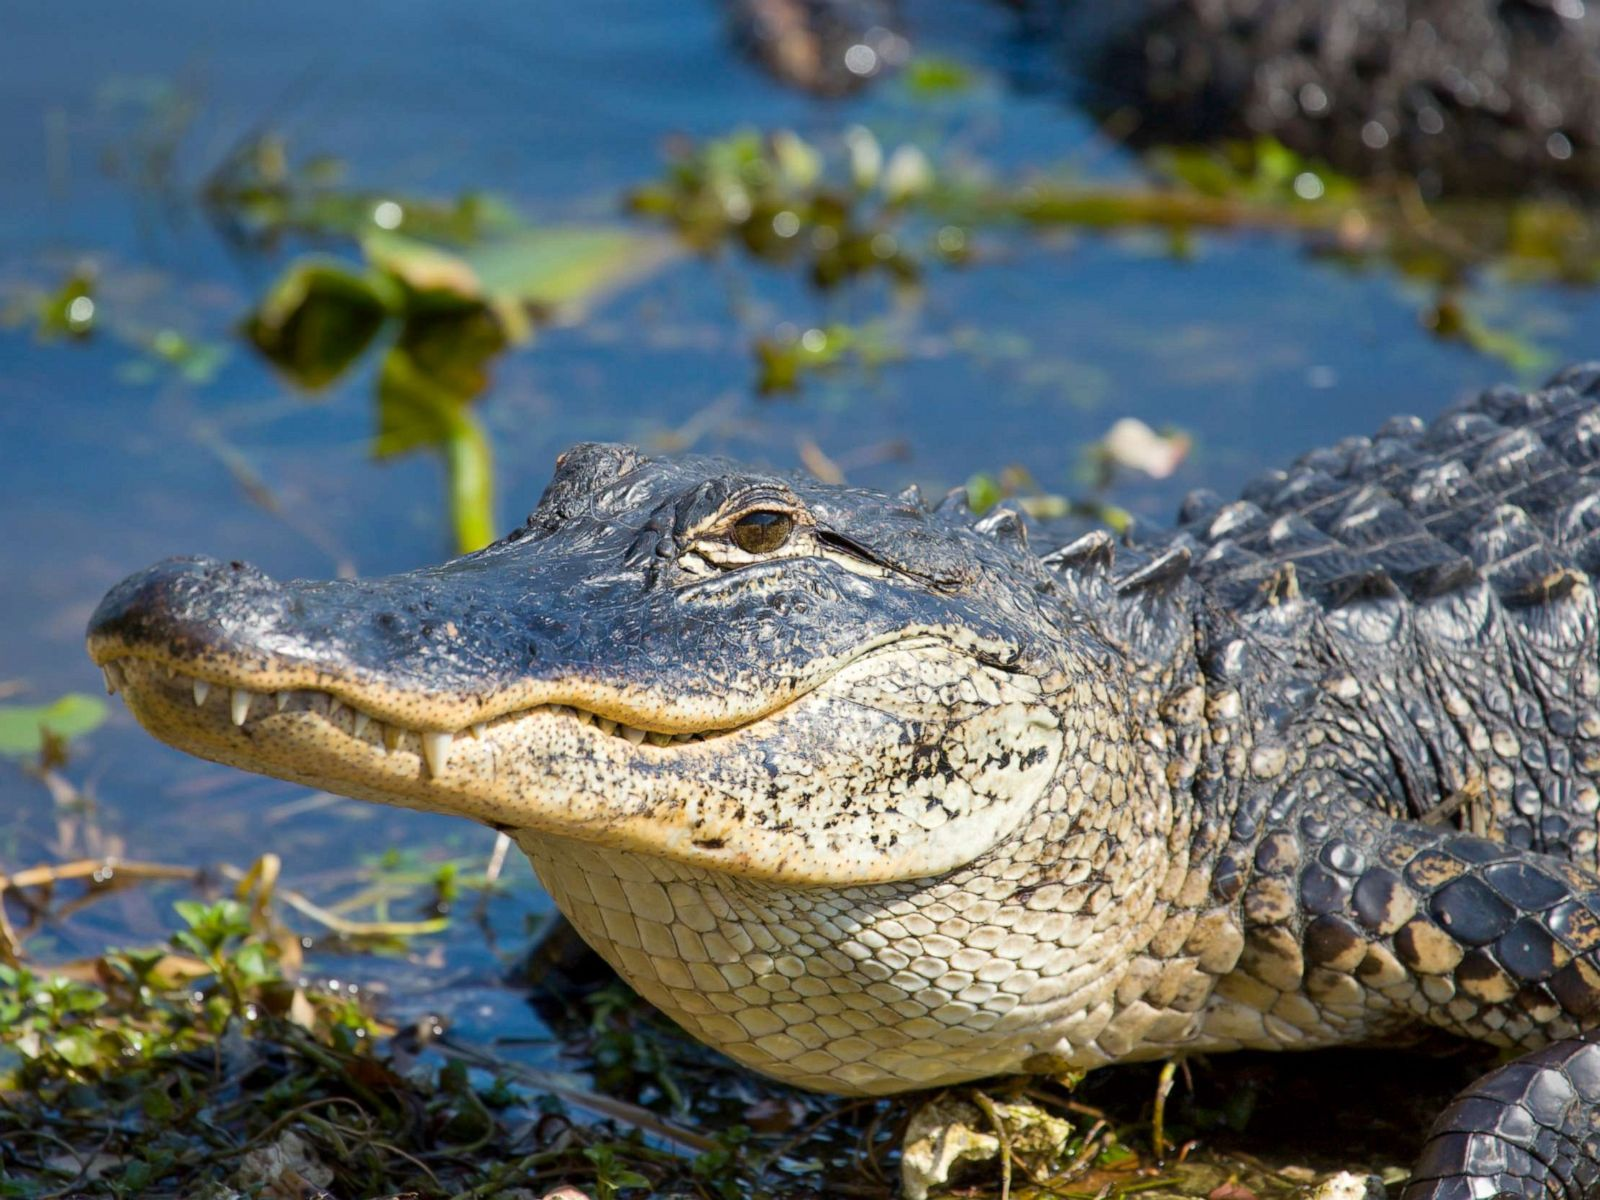 tennessee police department clarifies that 'meth-gators' are